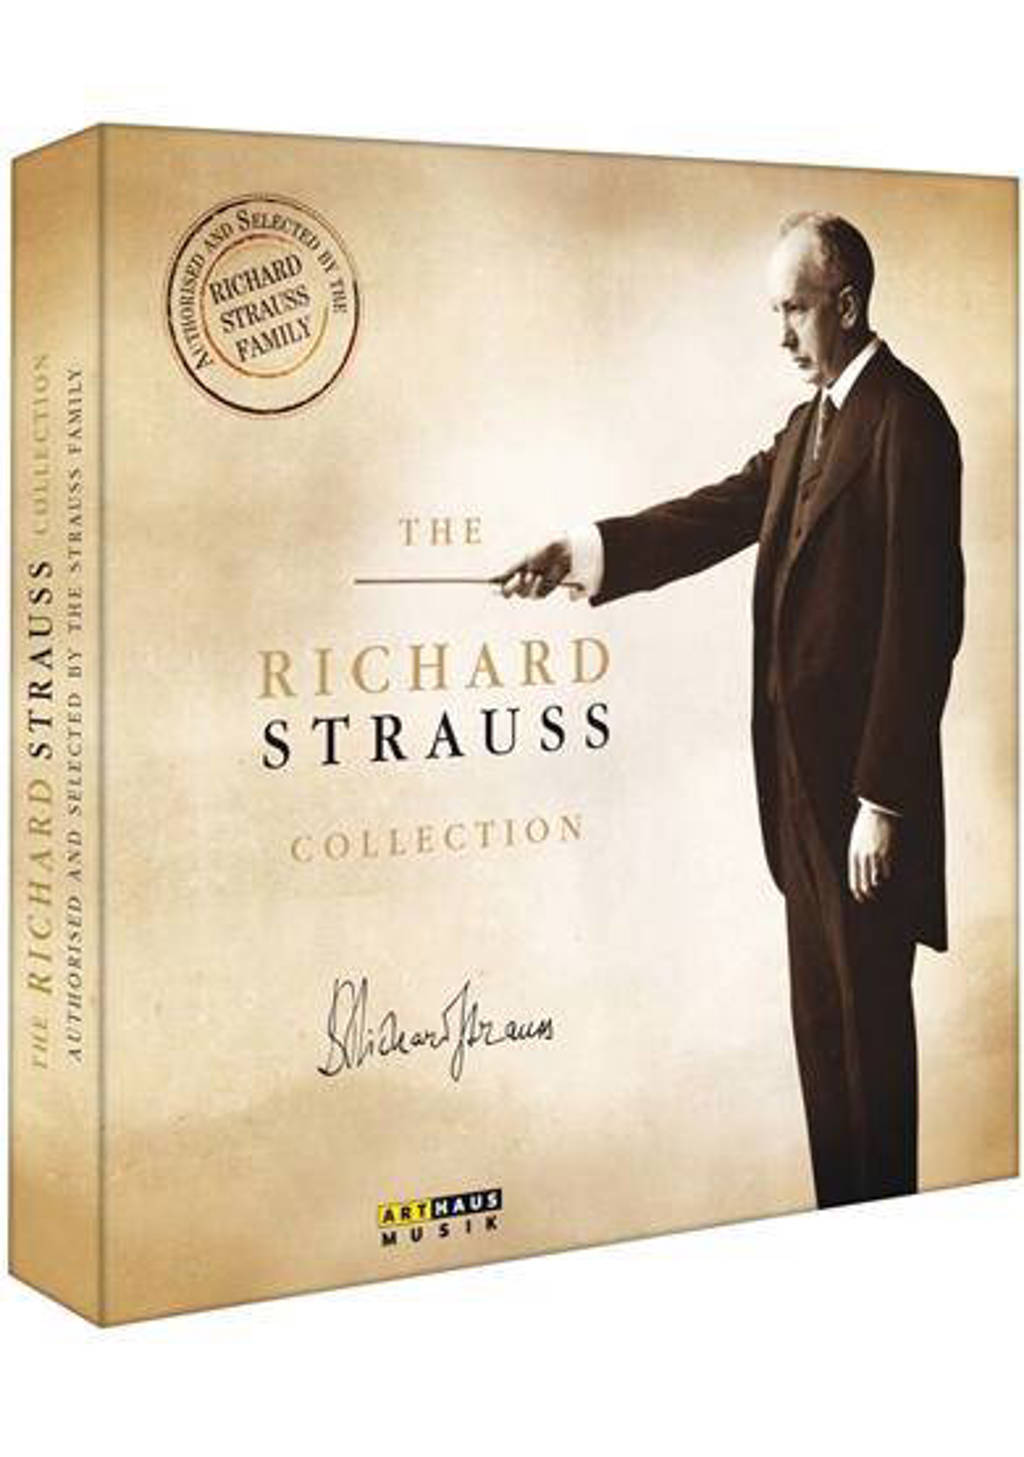 Salome,Elektra,Rosenkavelier - The Richard Strauss Collection 7 Op (DVD)